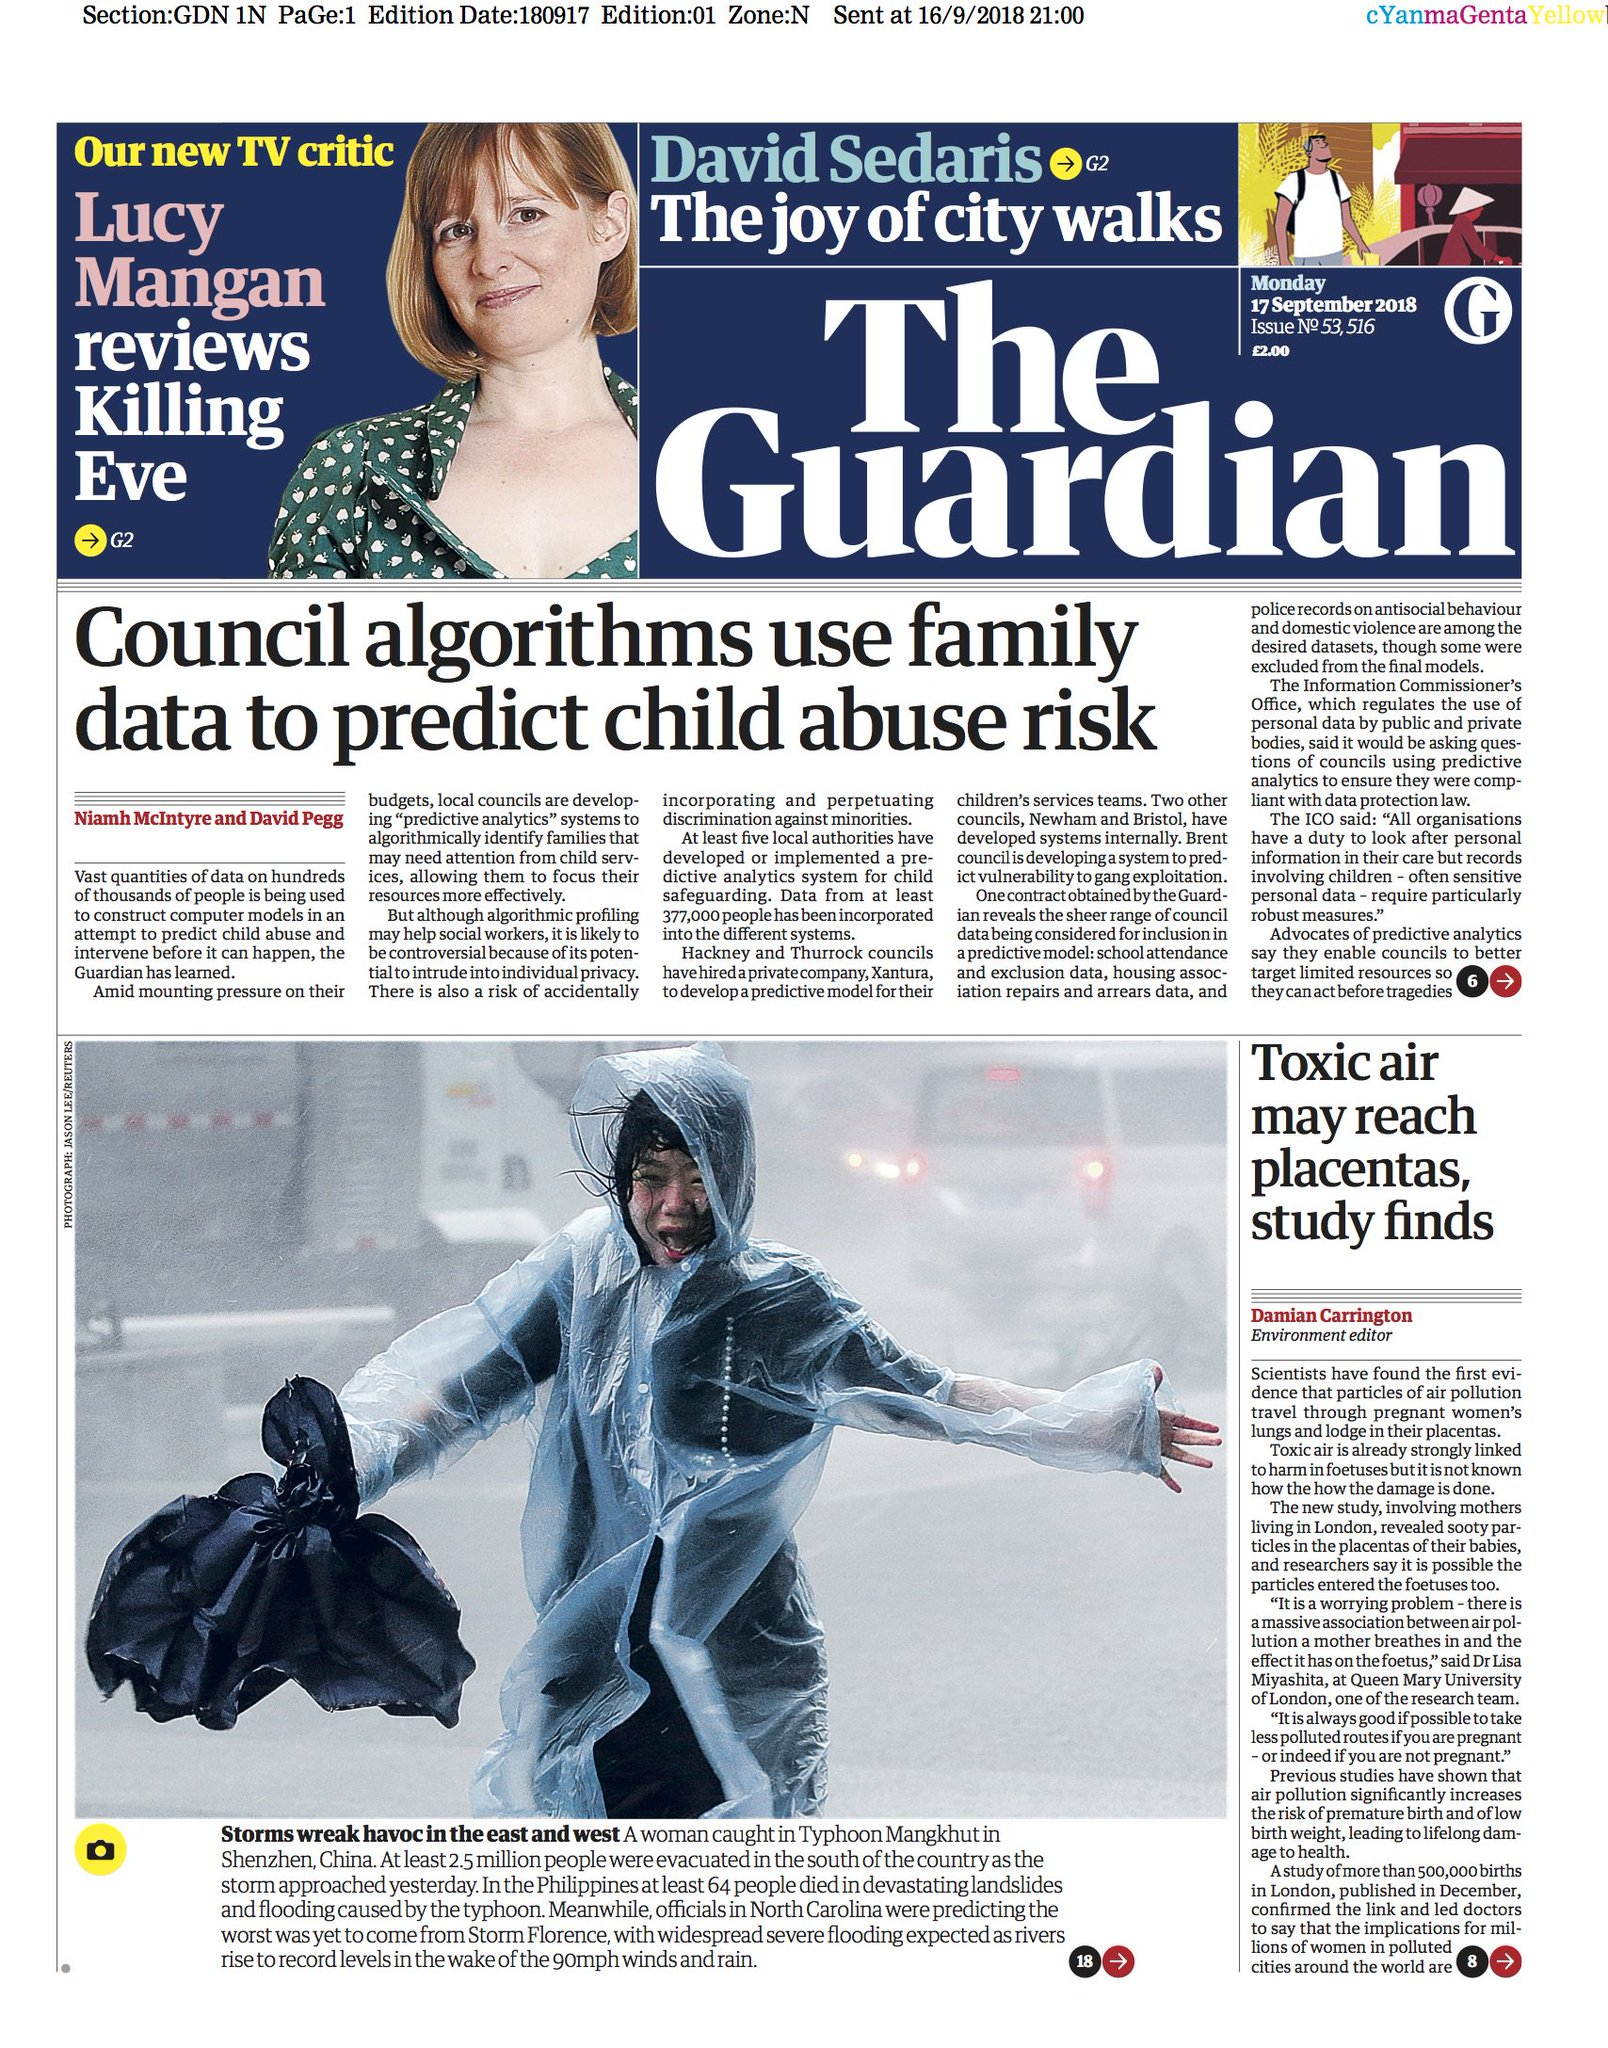 The Guardian front page, Monday 17 September 2018: Council algorithms use family data to predict child abuse risk https://t.co/b7CADWqci5